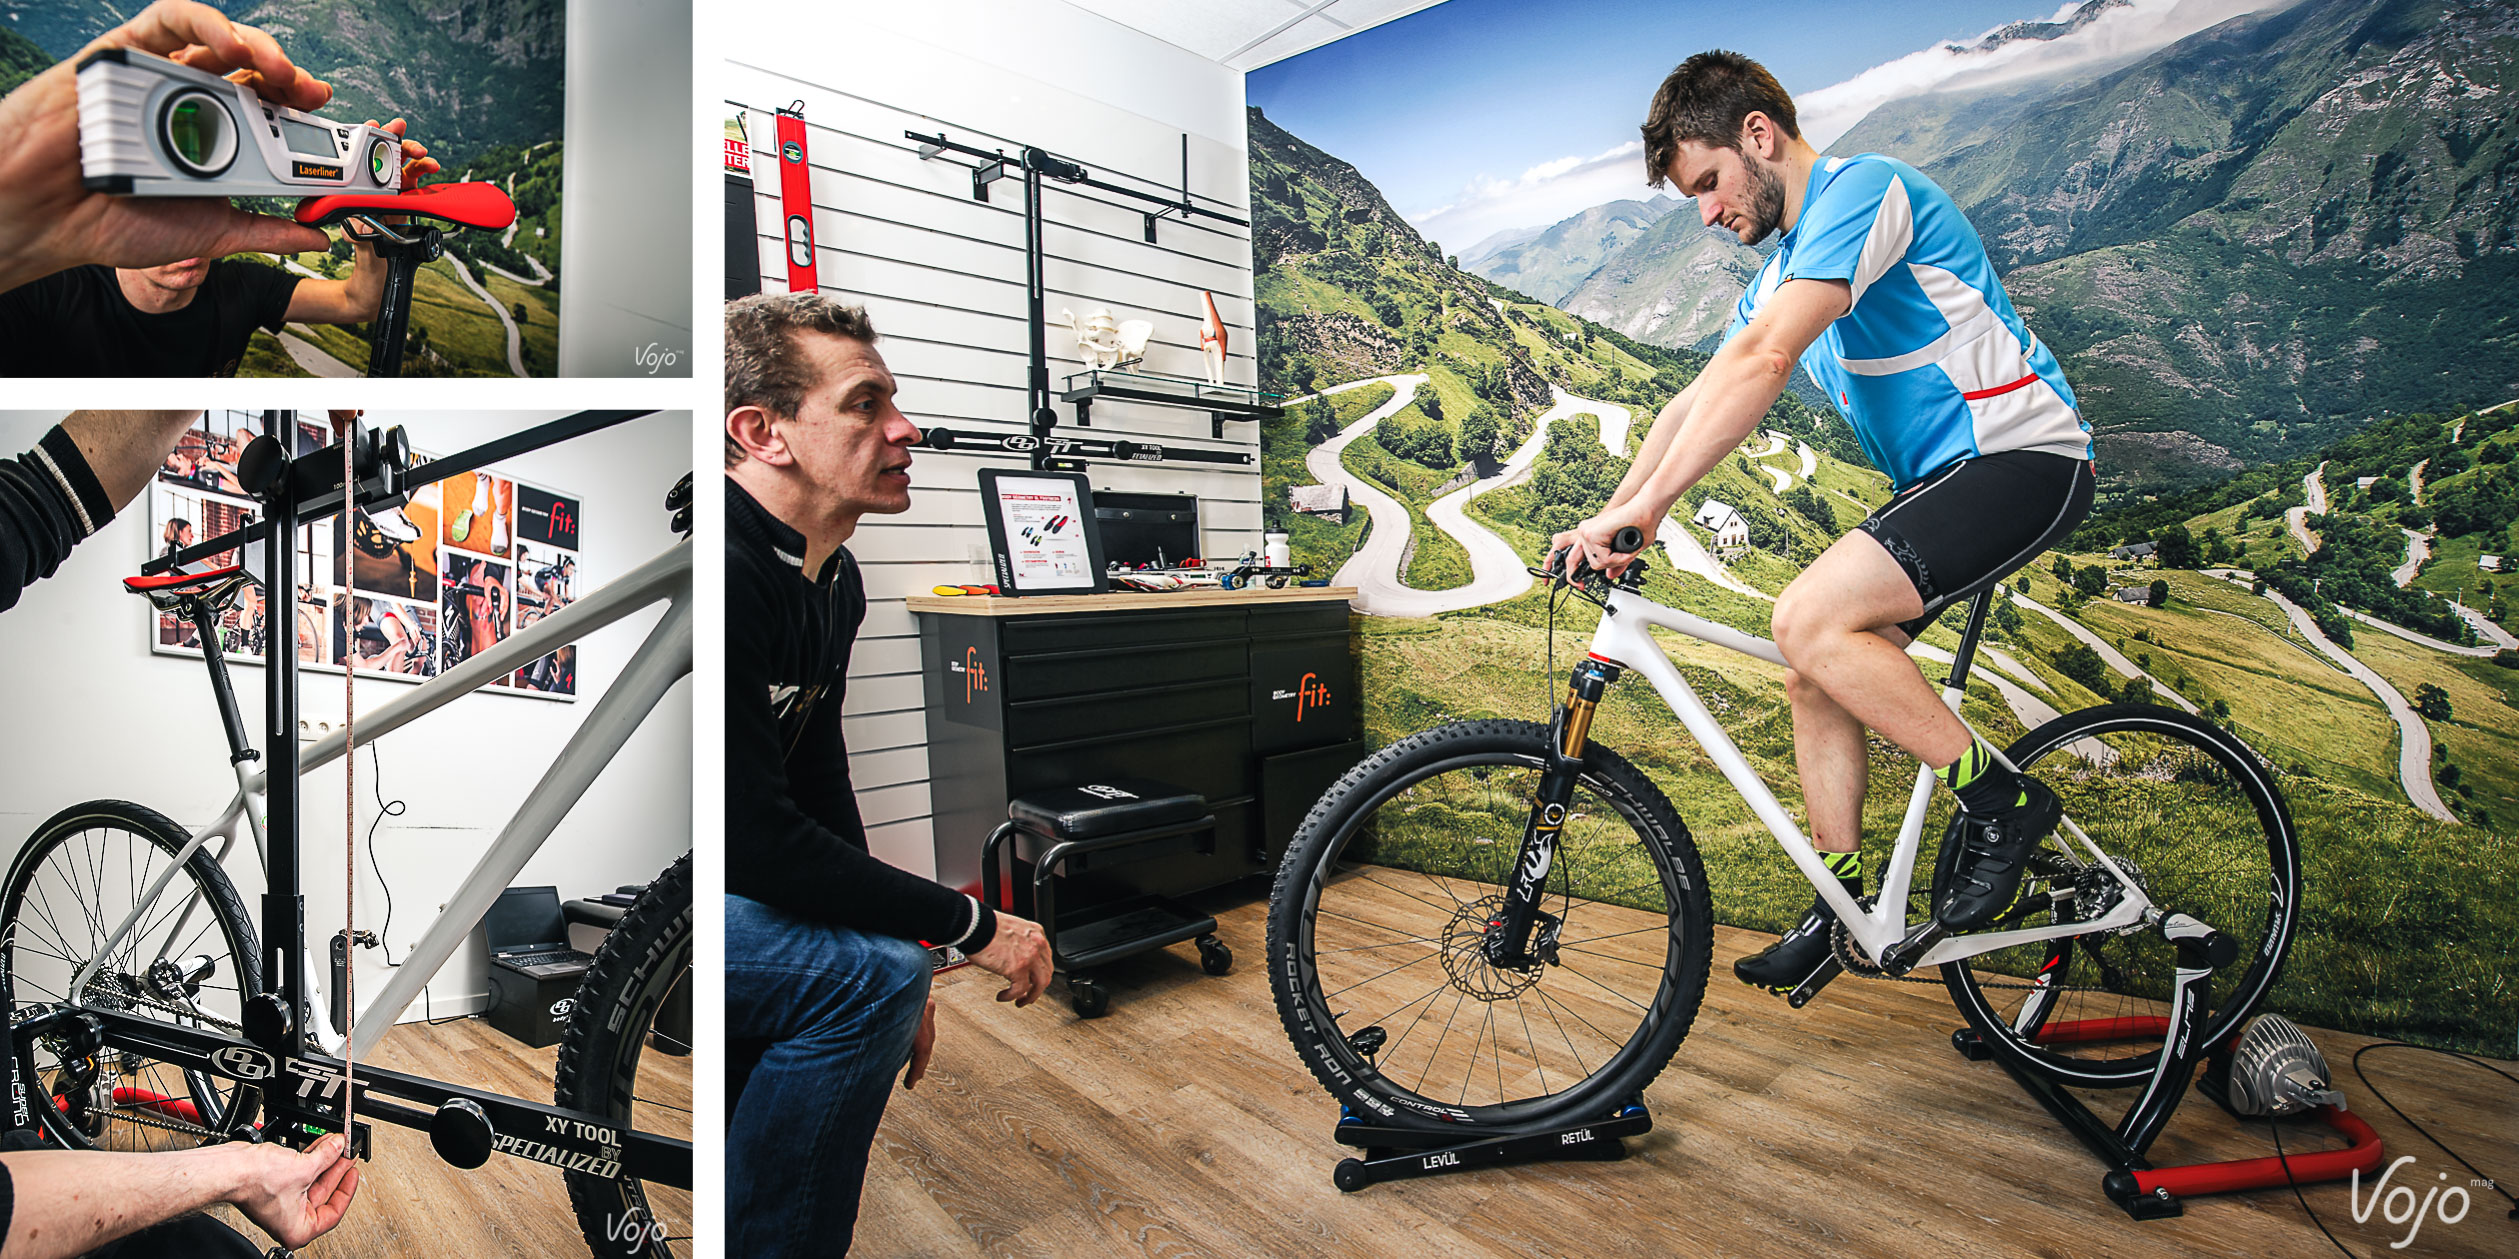 3-Selle_Specialized_Power_test_Copyright_OBeart_VojoMag-1-2